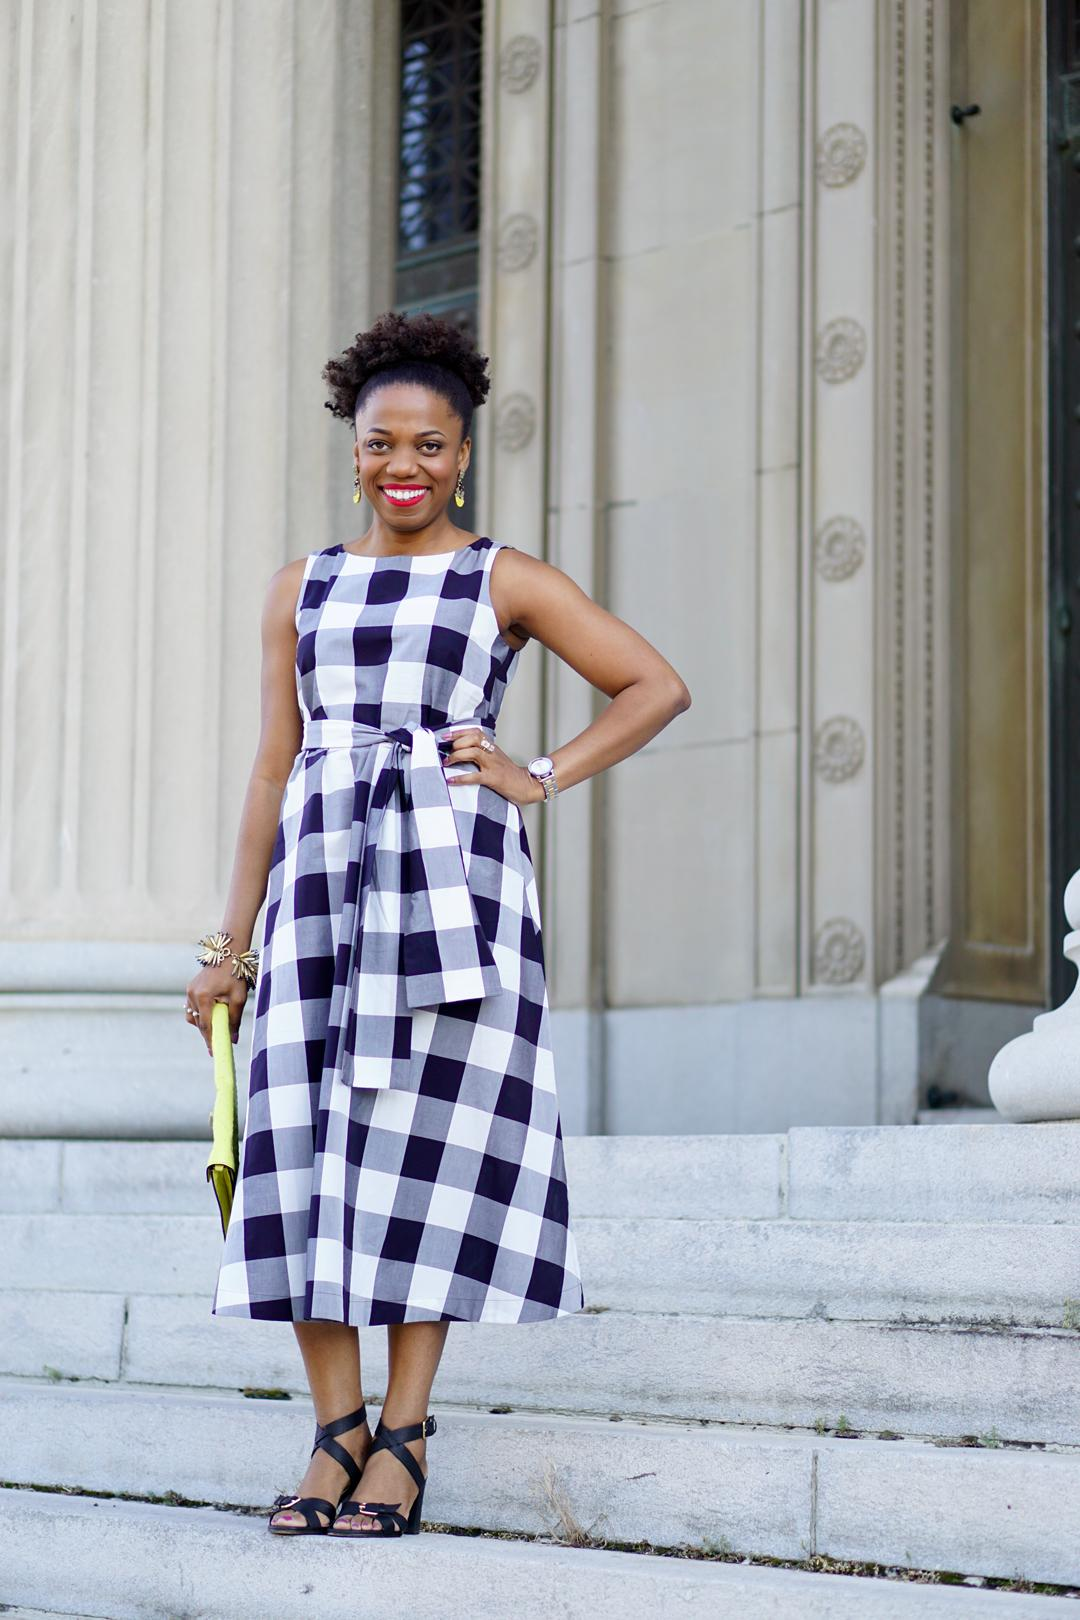 0163439a0899 My Gingham Style  A Sophisticated Midi Dress - Economy of Style